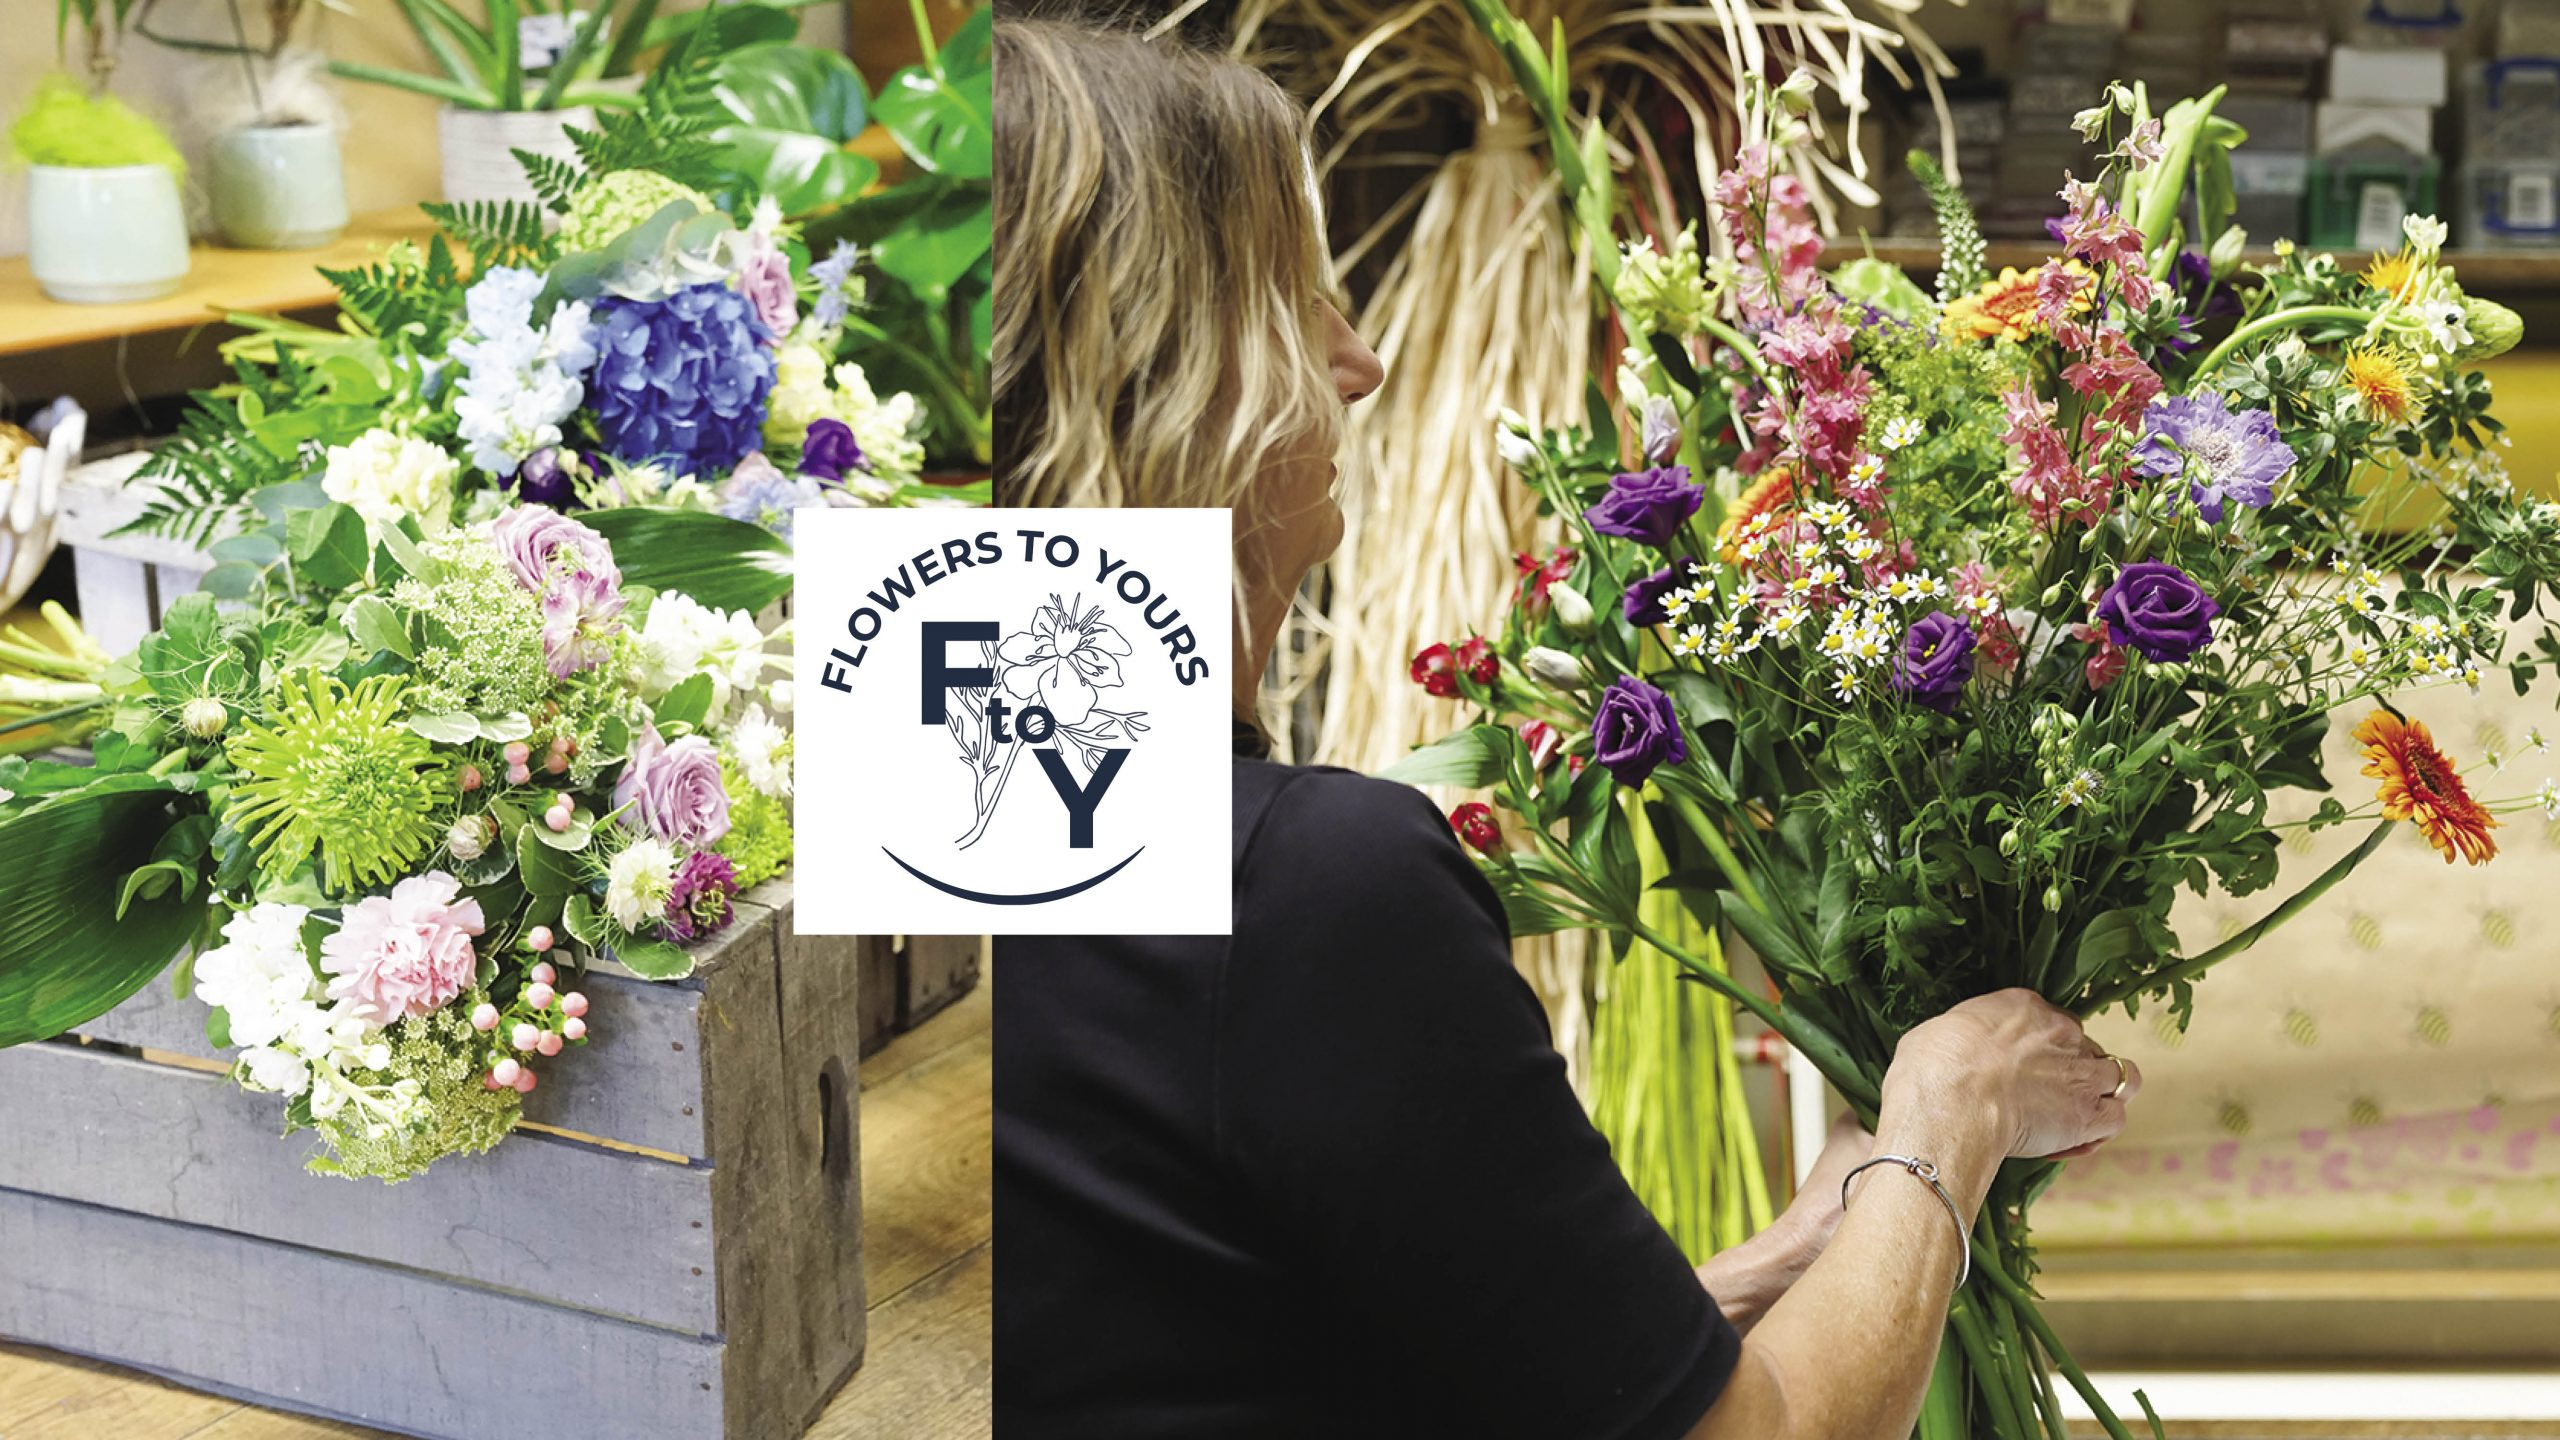 Win a six-month eco-friendly flower subscription worth £216!